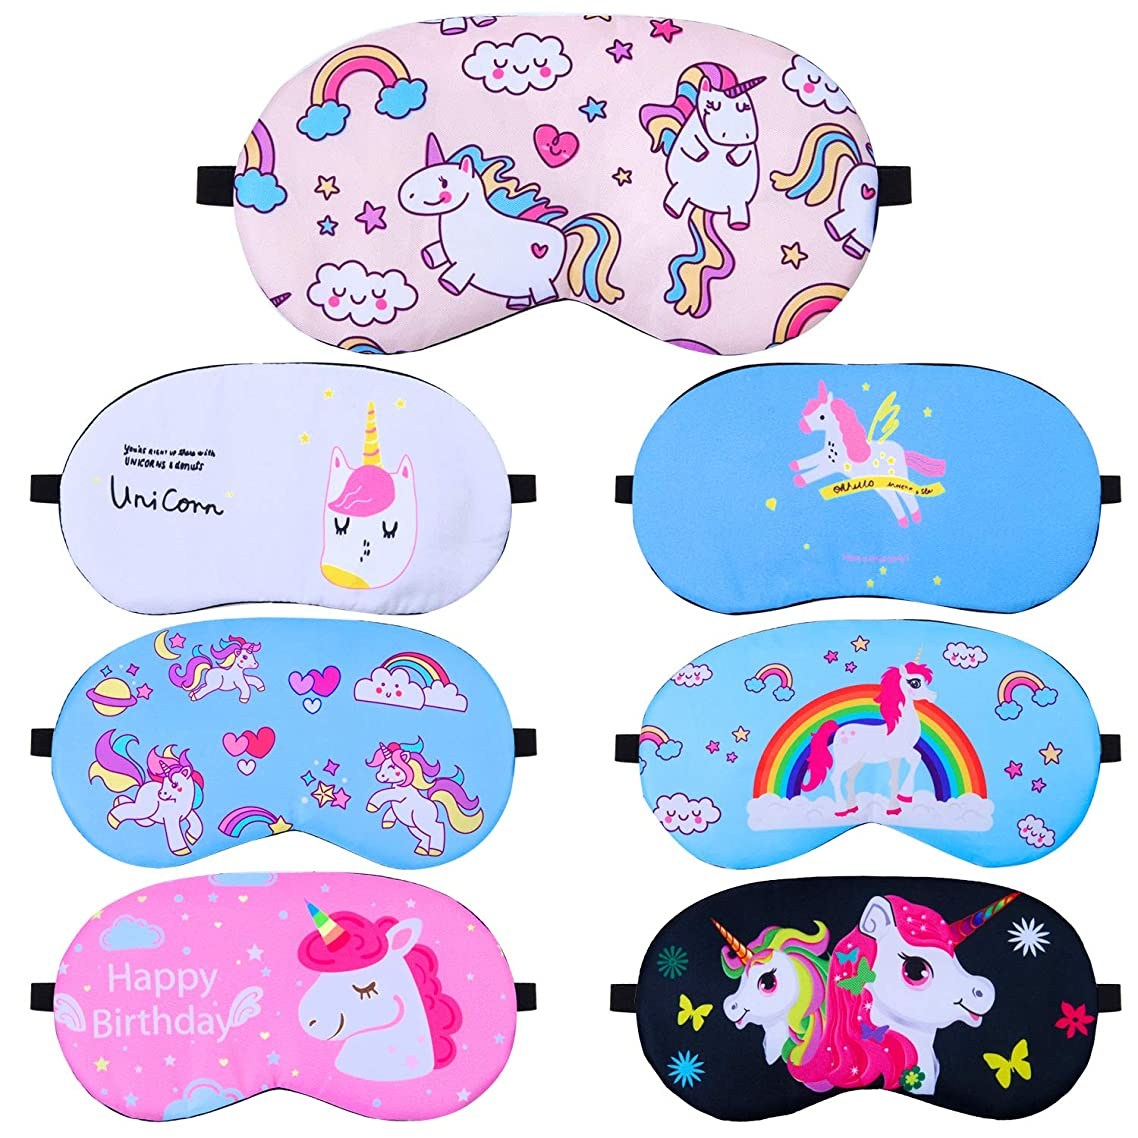 Elcoho 7 Pieces Unicorn Sleeping Mask Soft Sleep Blindfold Eye Mask Cover for Kids or Adults